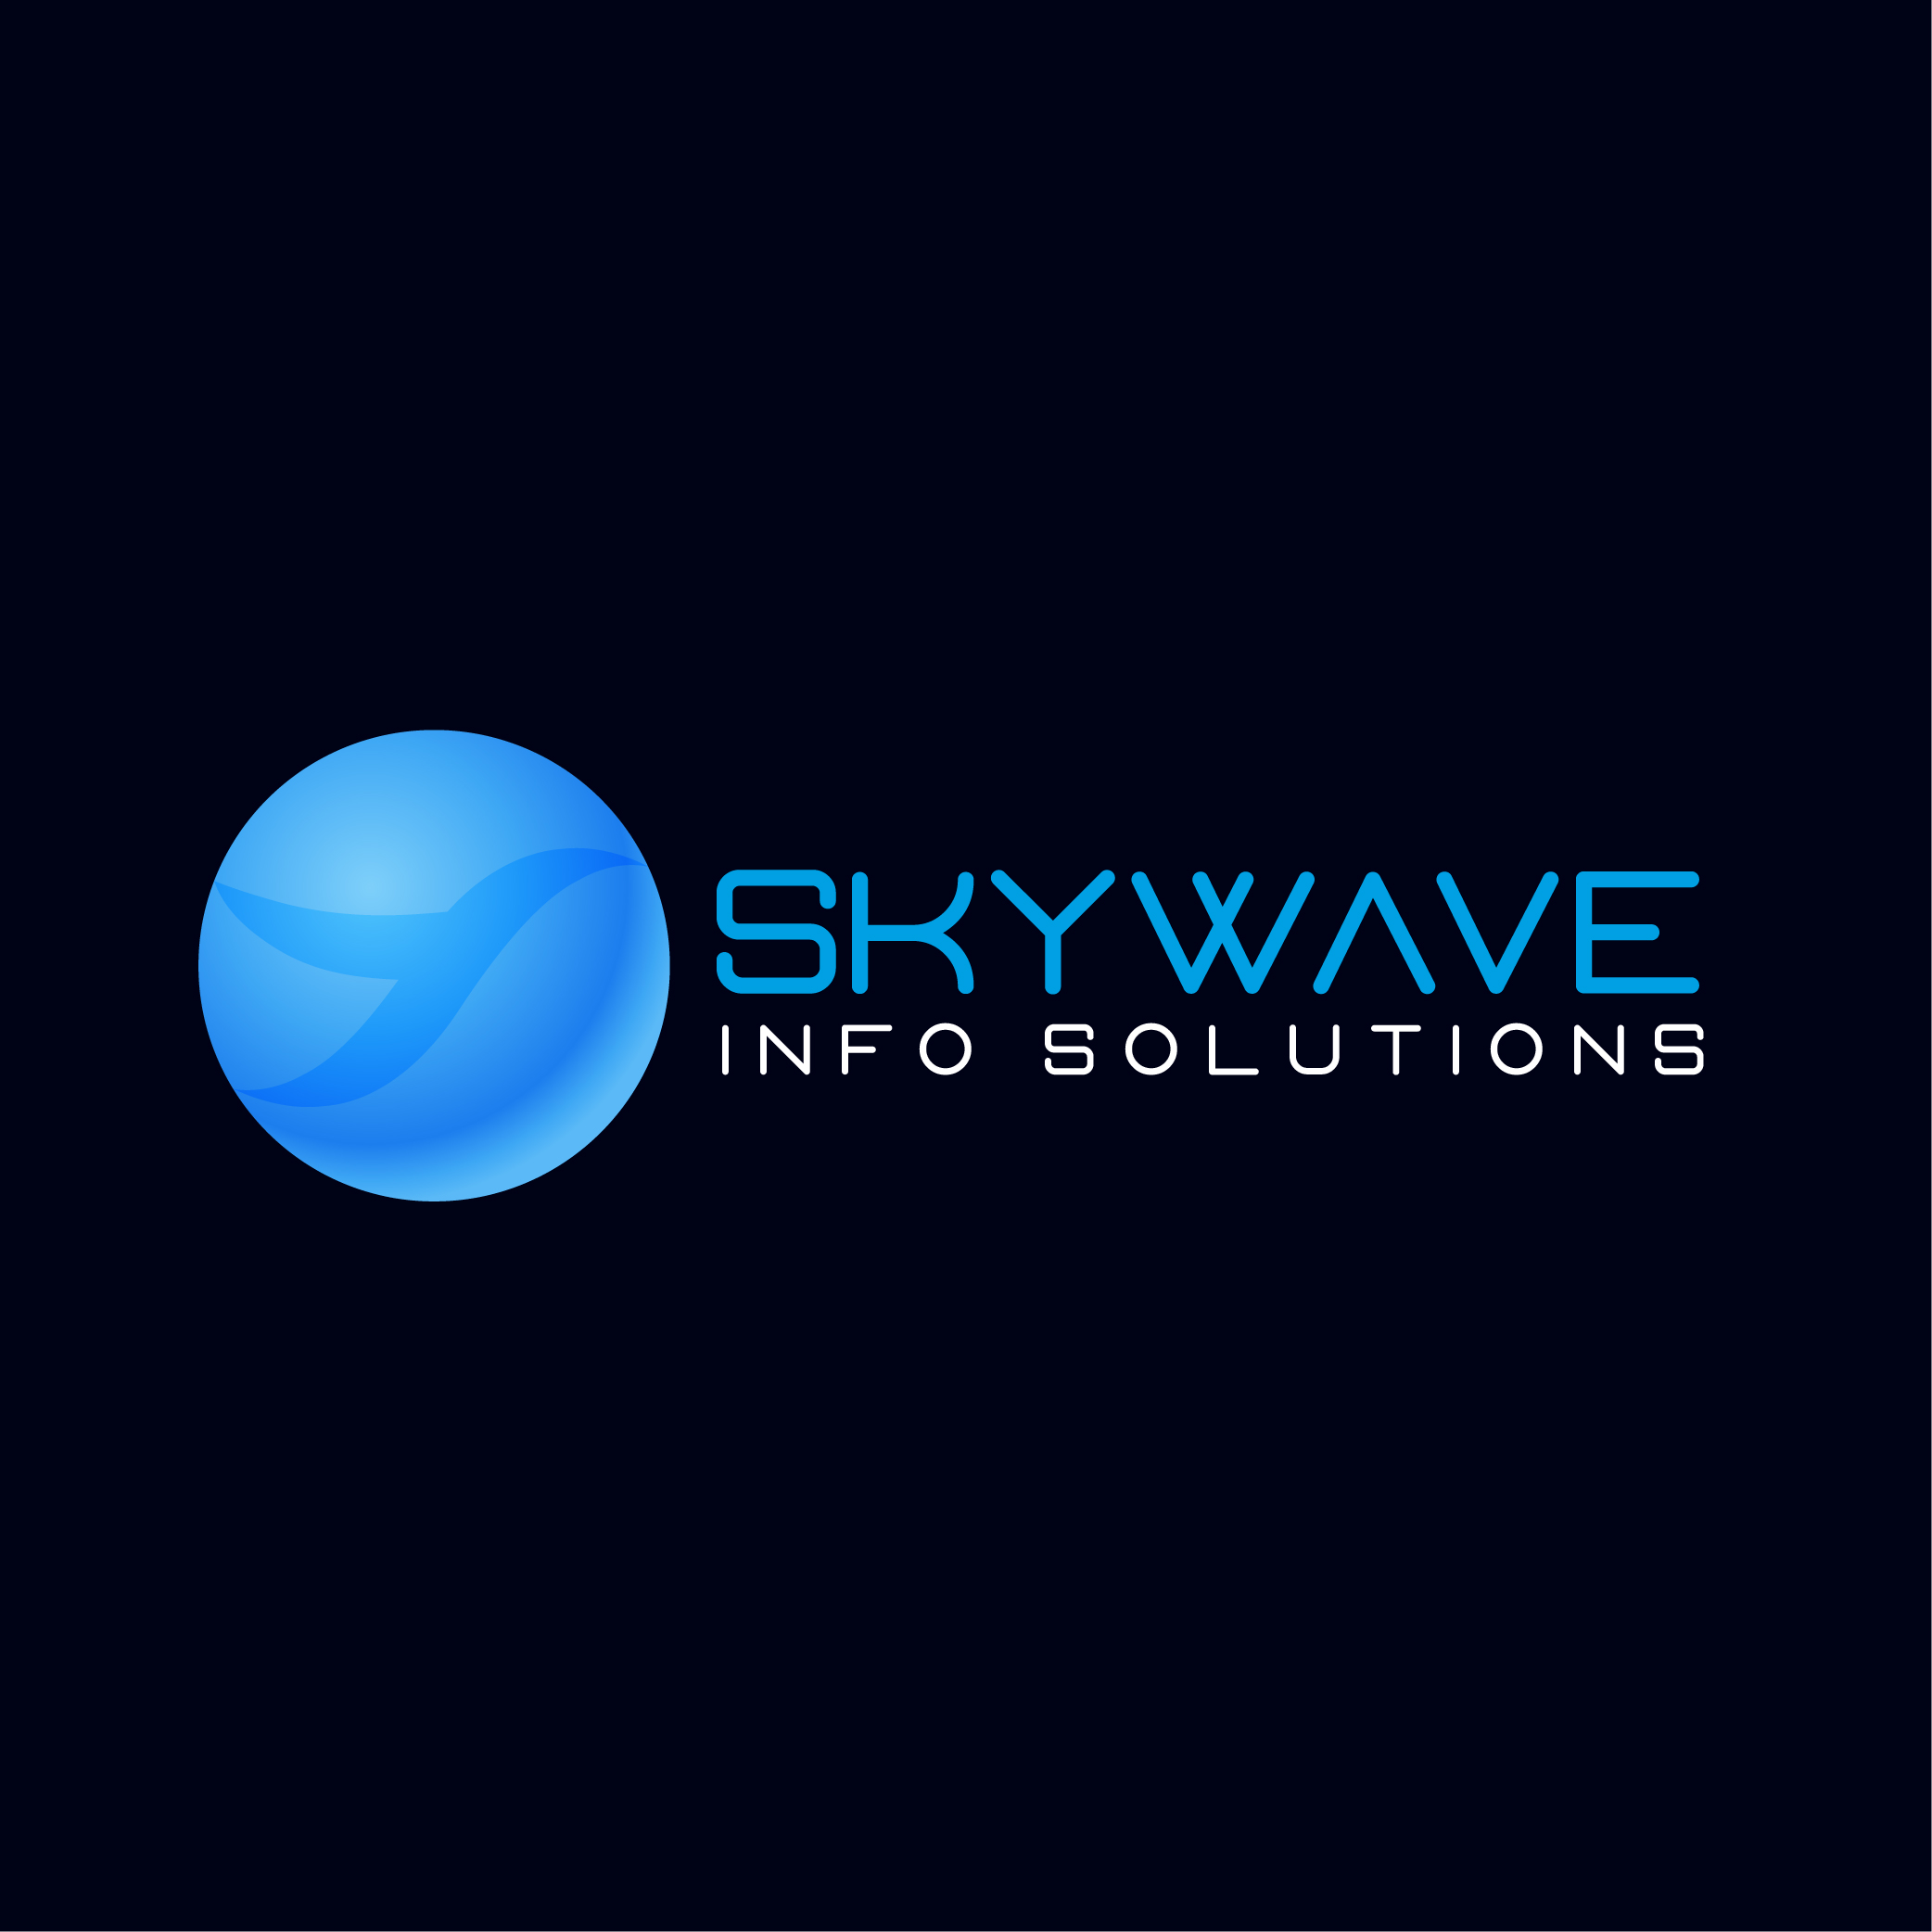 https://www.skywaveinfosolutions.com/